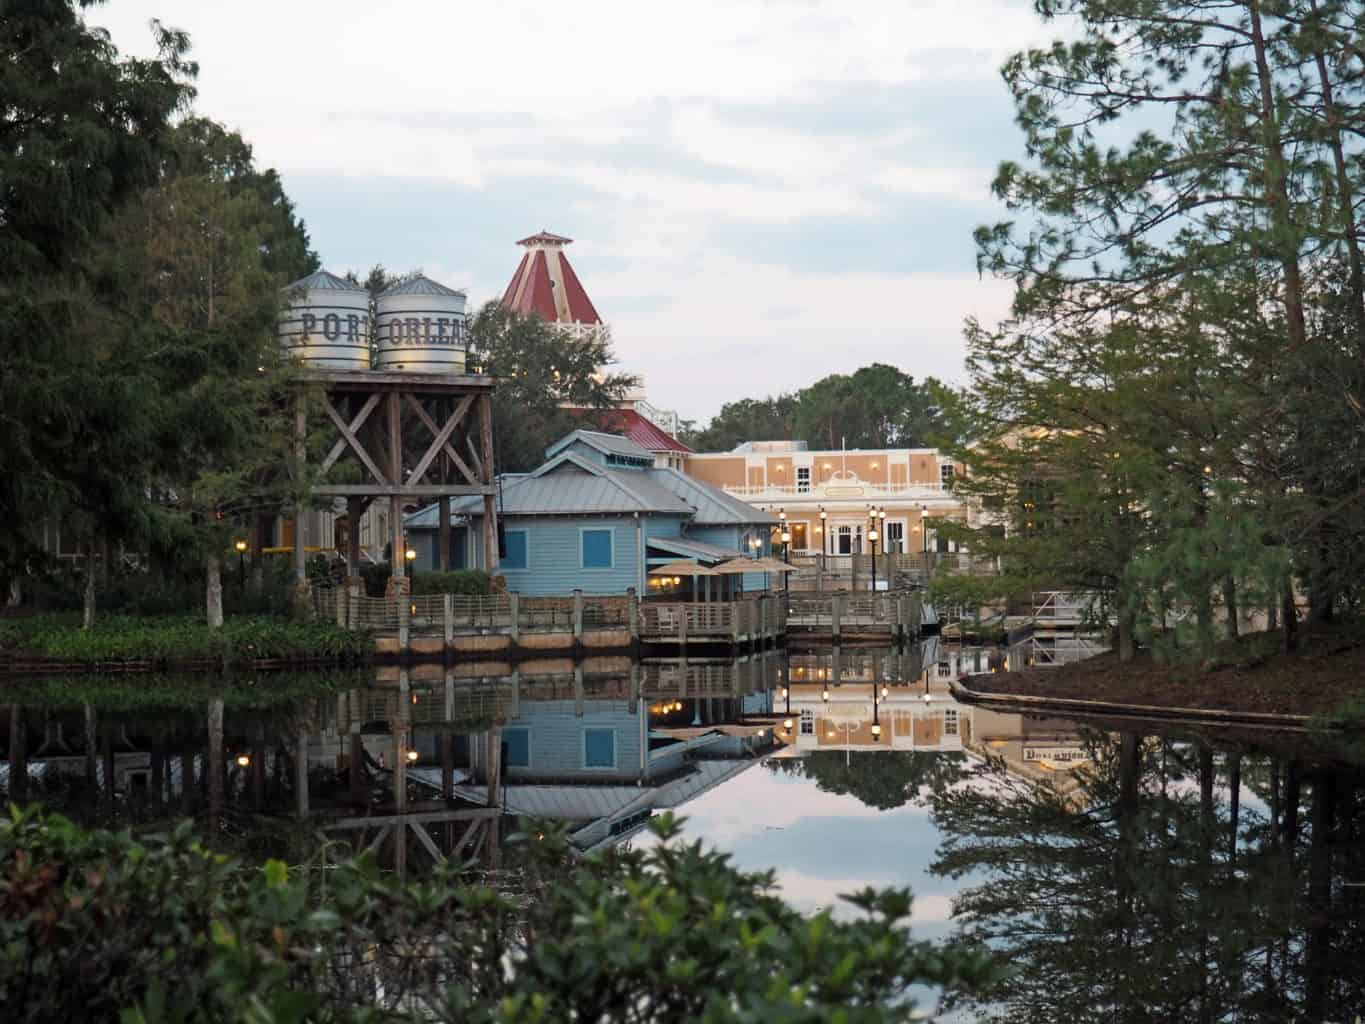 Port Orleans Riverside: A Disney Resort Review